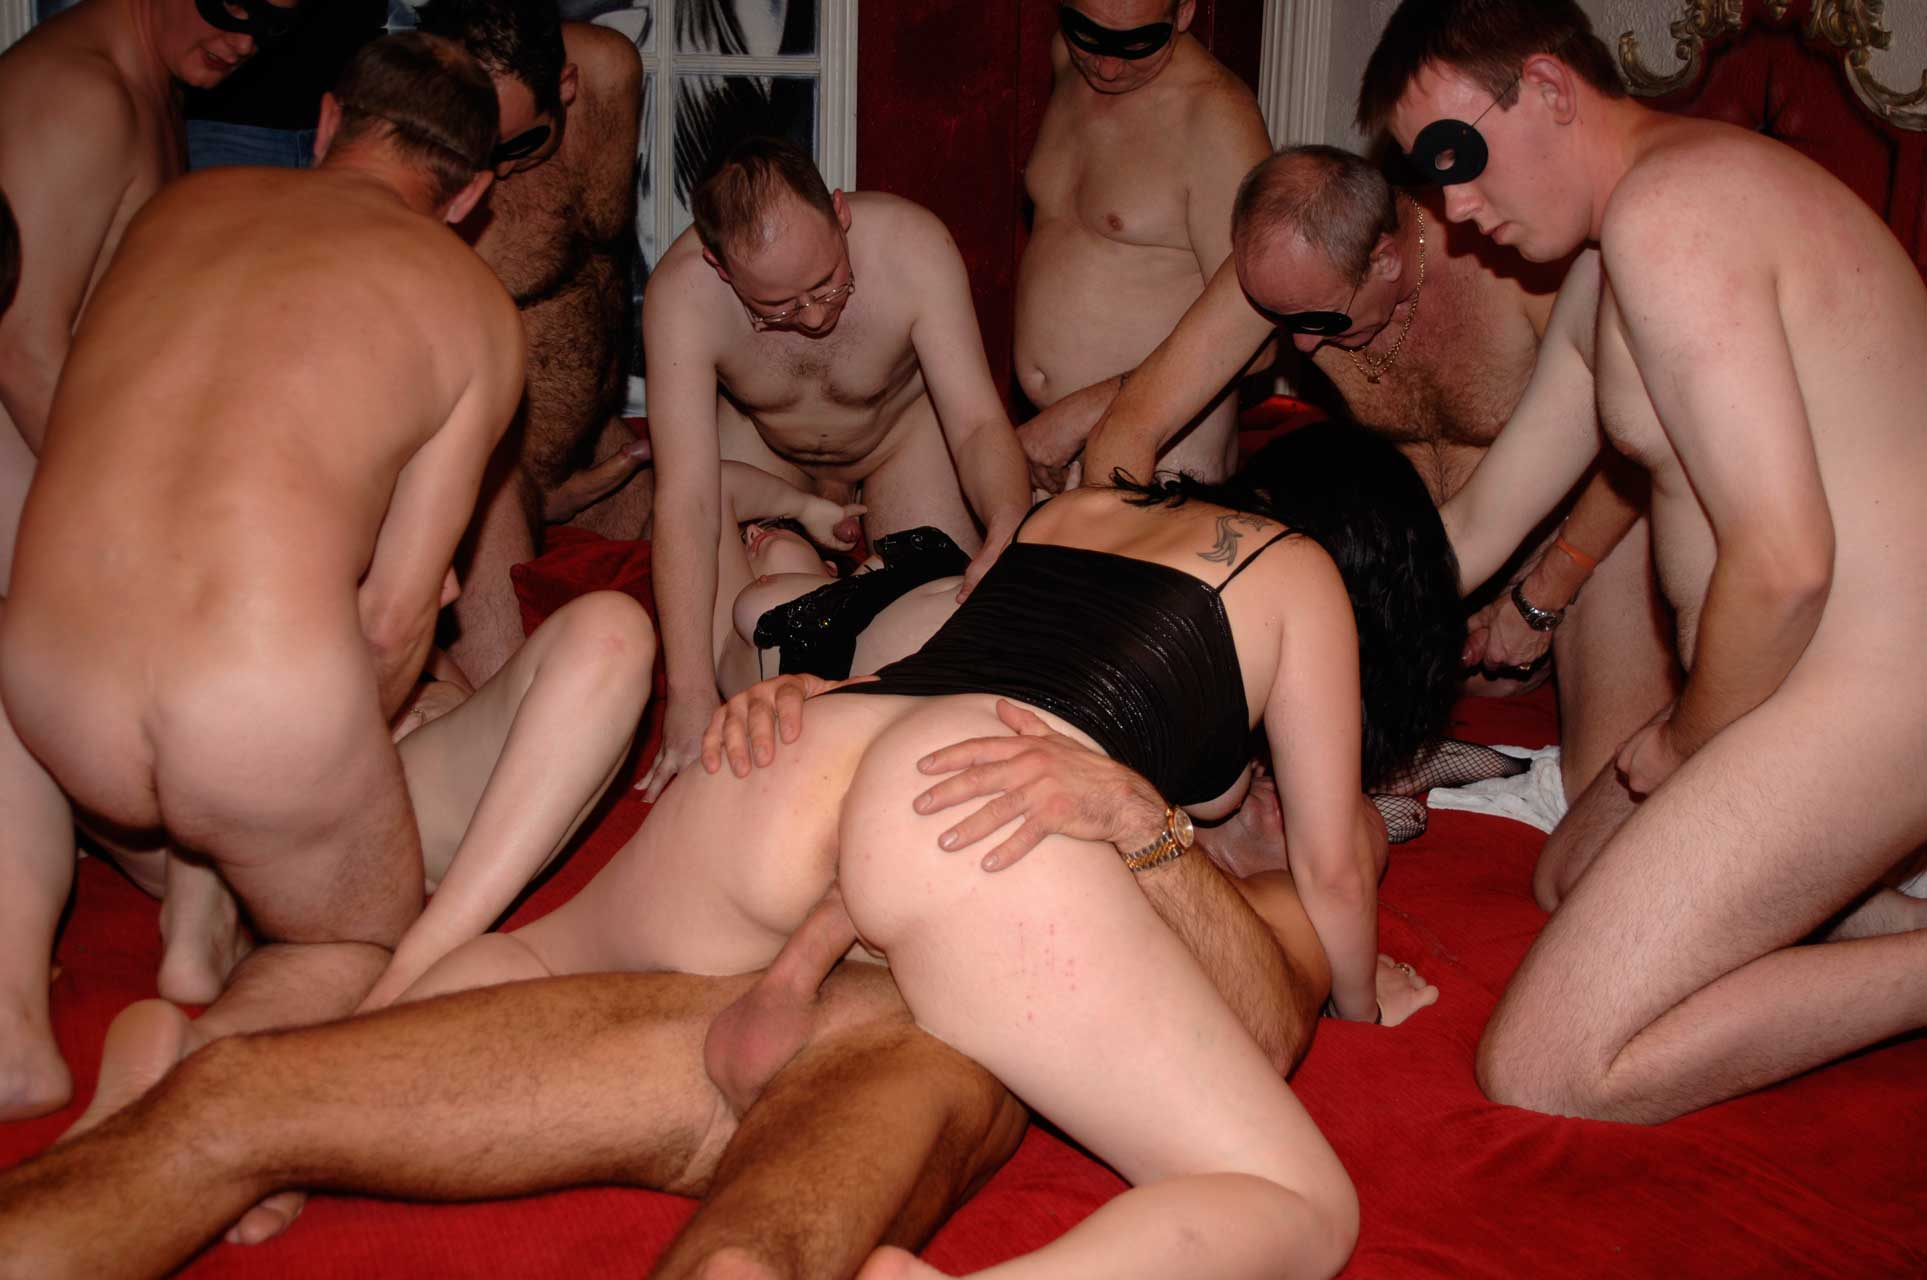 British amateur gangbang party with swingers